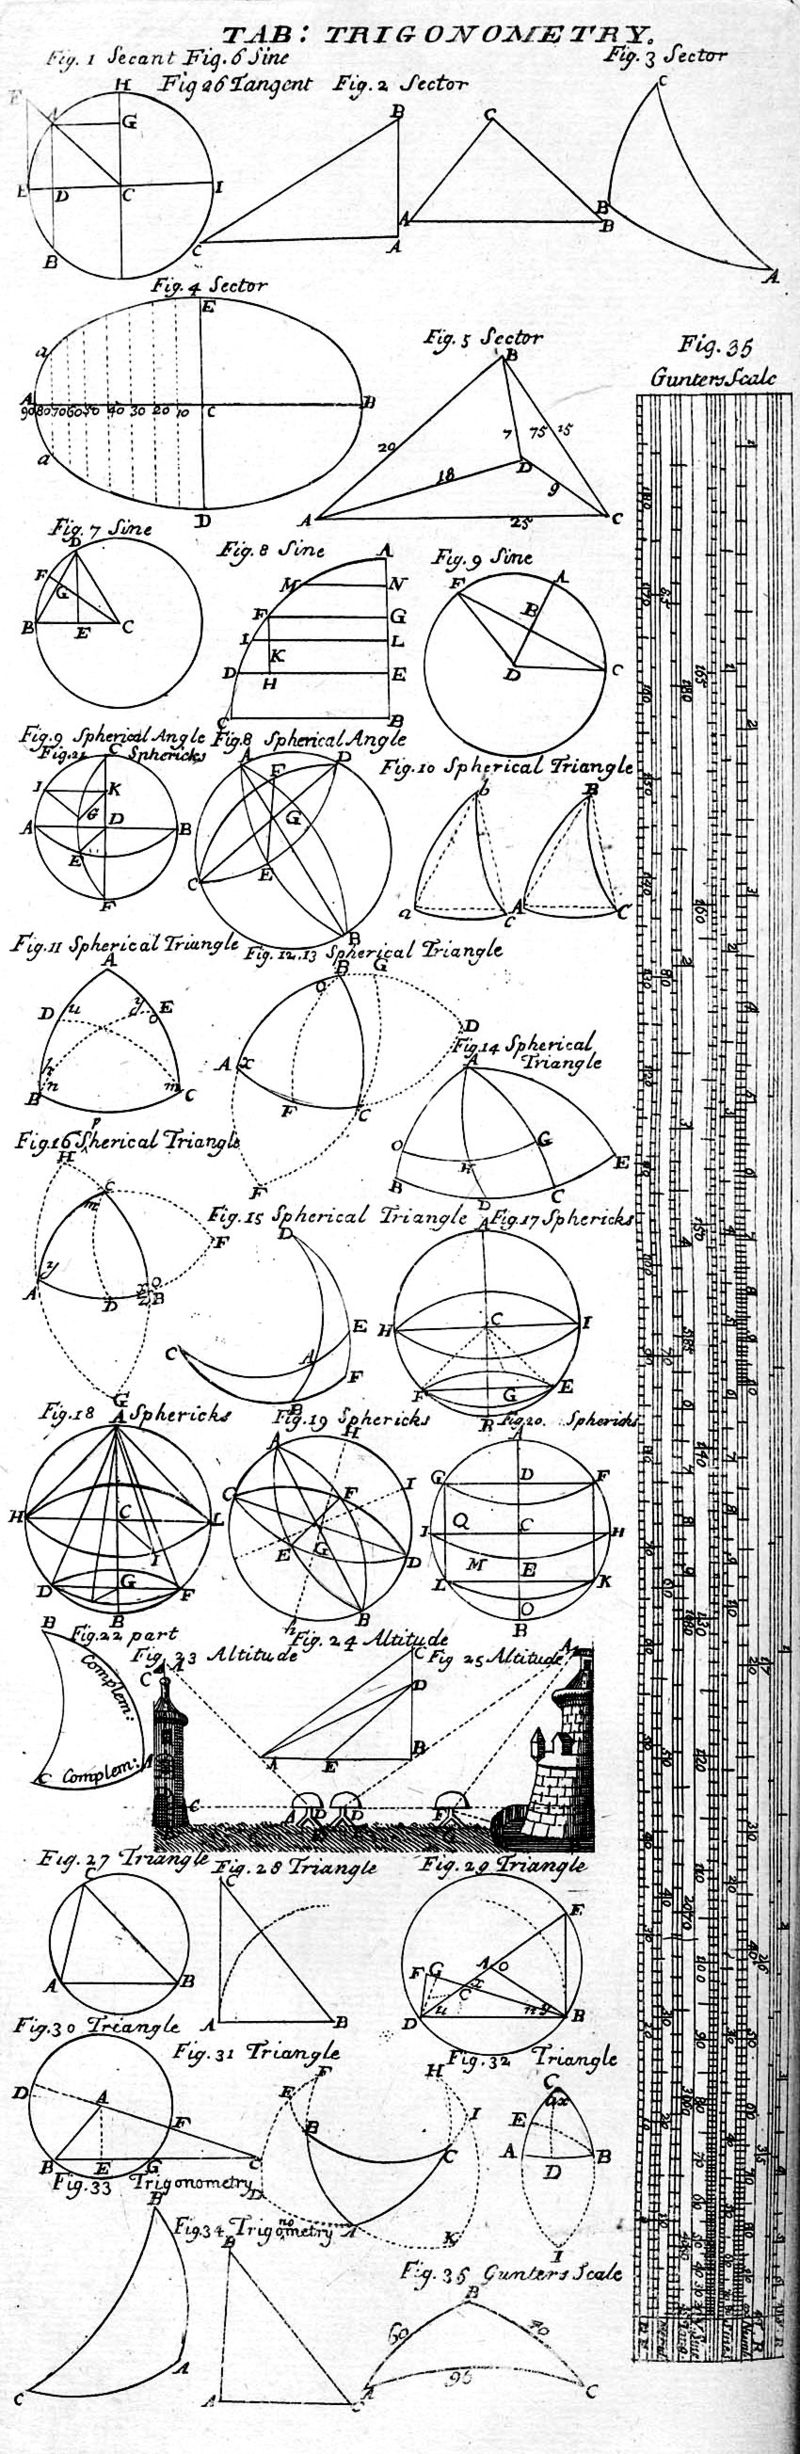 800px-Table_of_Trigonometry,_Cyclopaedia,_Volume_2